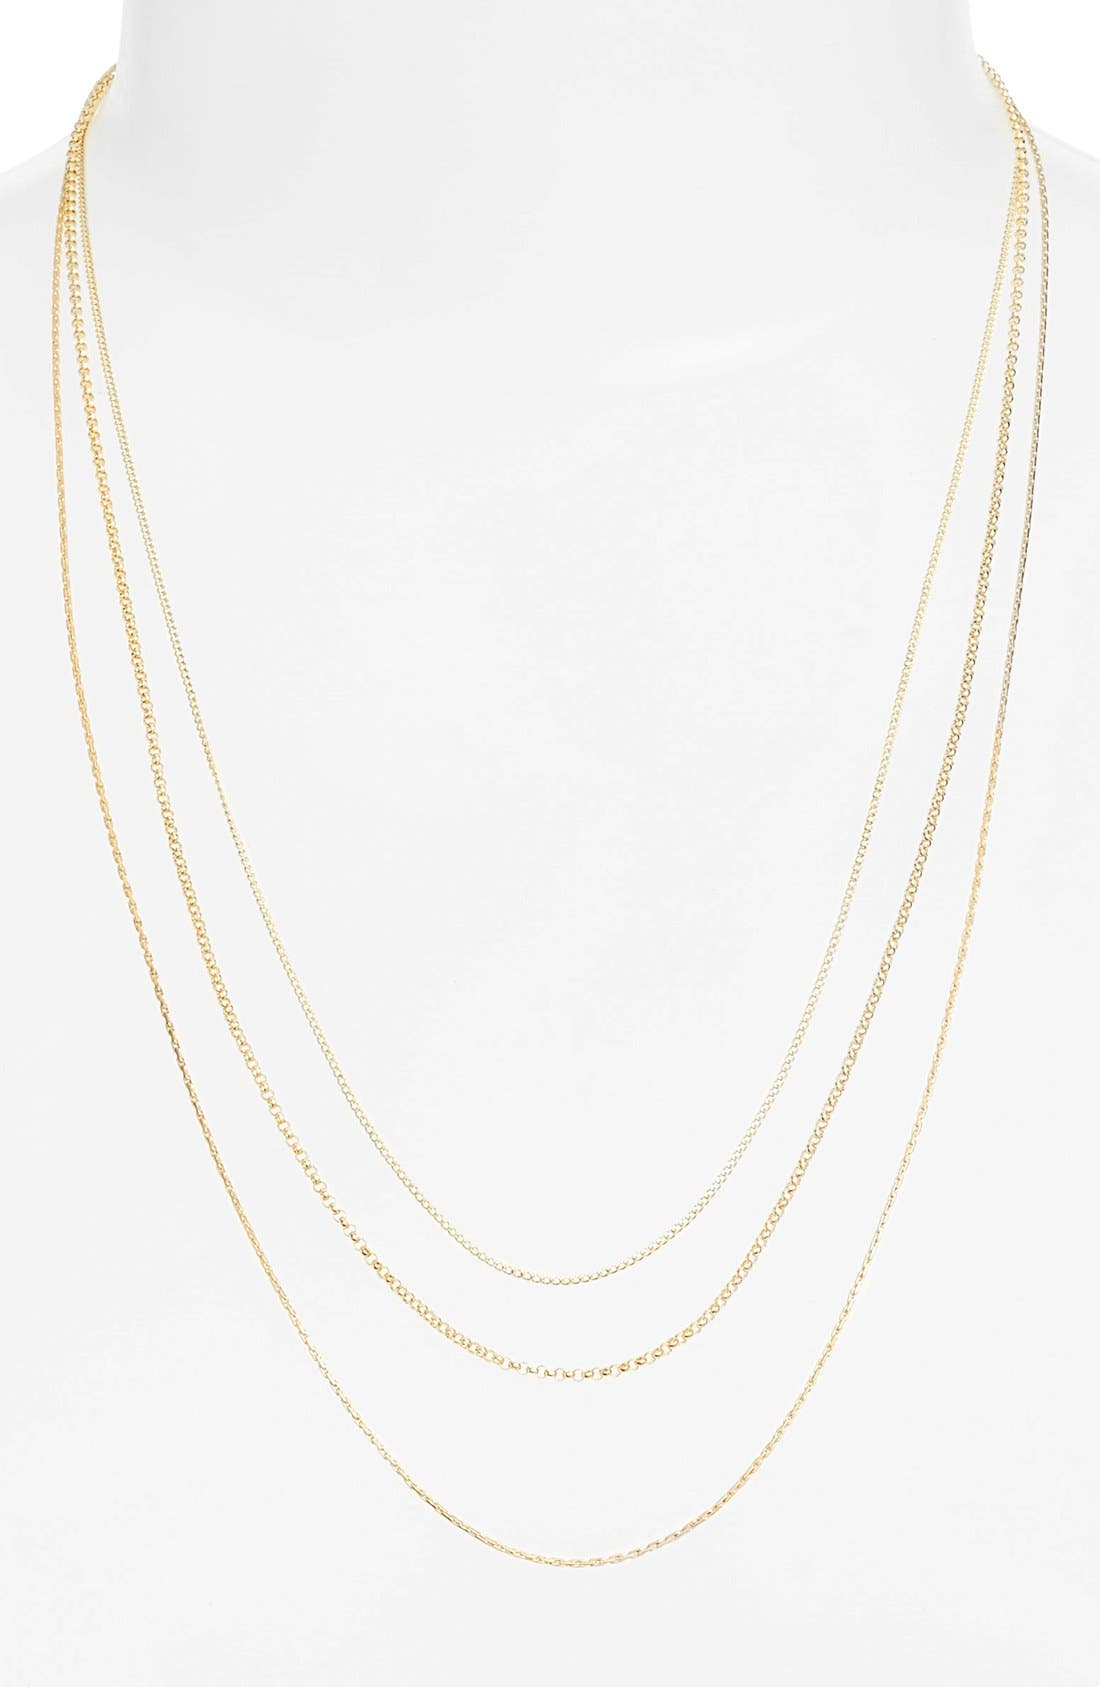 Multistrand Chain Necklace,                         Main,                         color, Gold